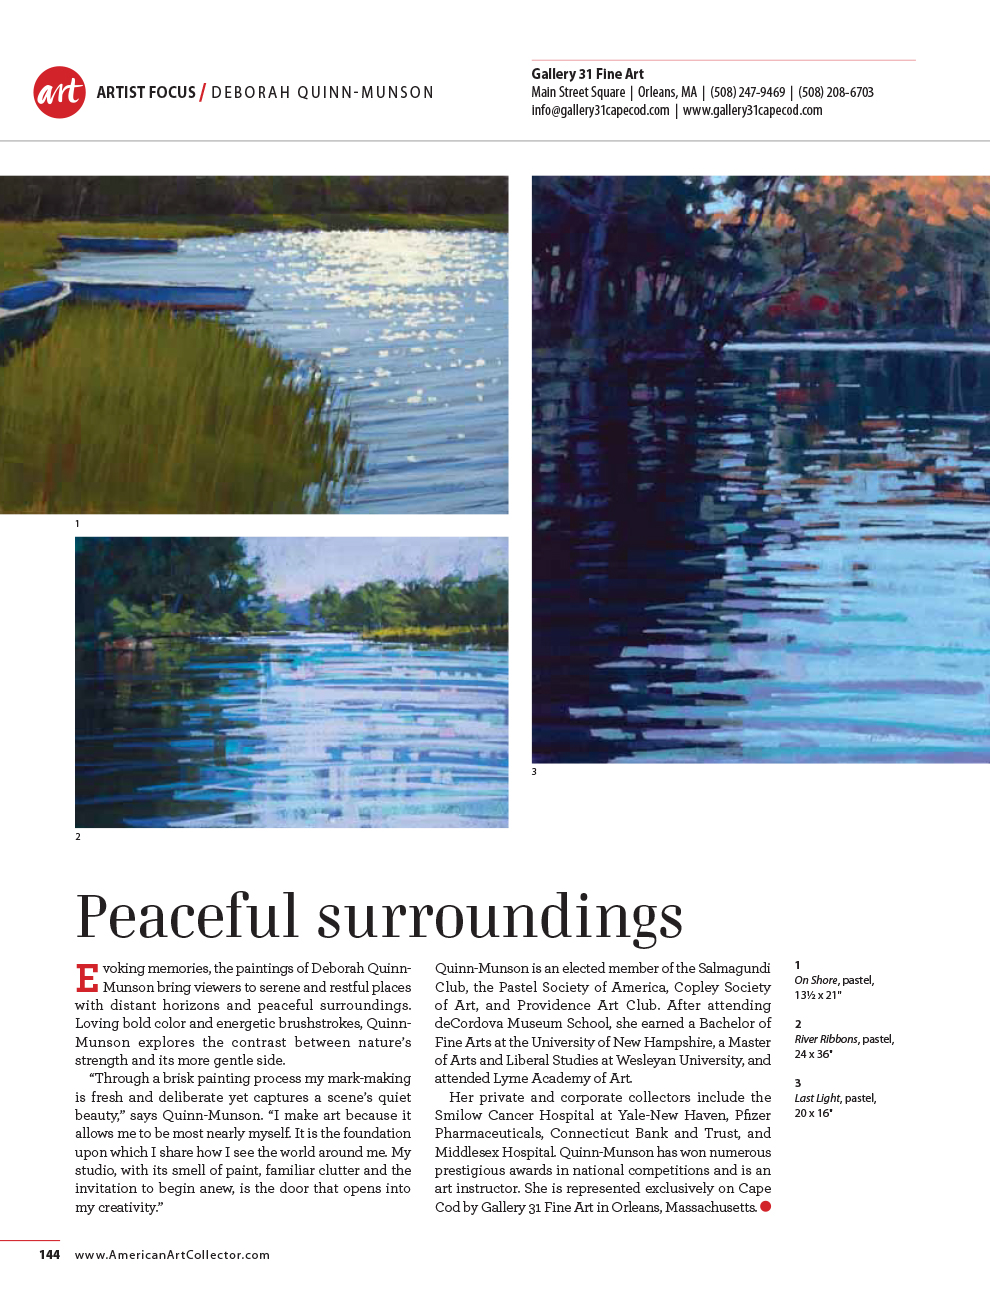 This is a page which appeared in   The American Art Collector   magazine in its June 2014 issue, focusing on the pastels of Deborah.